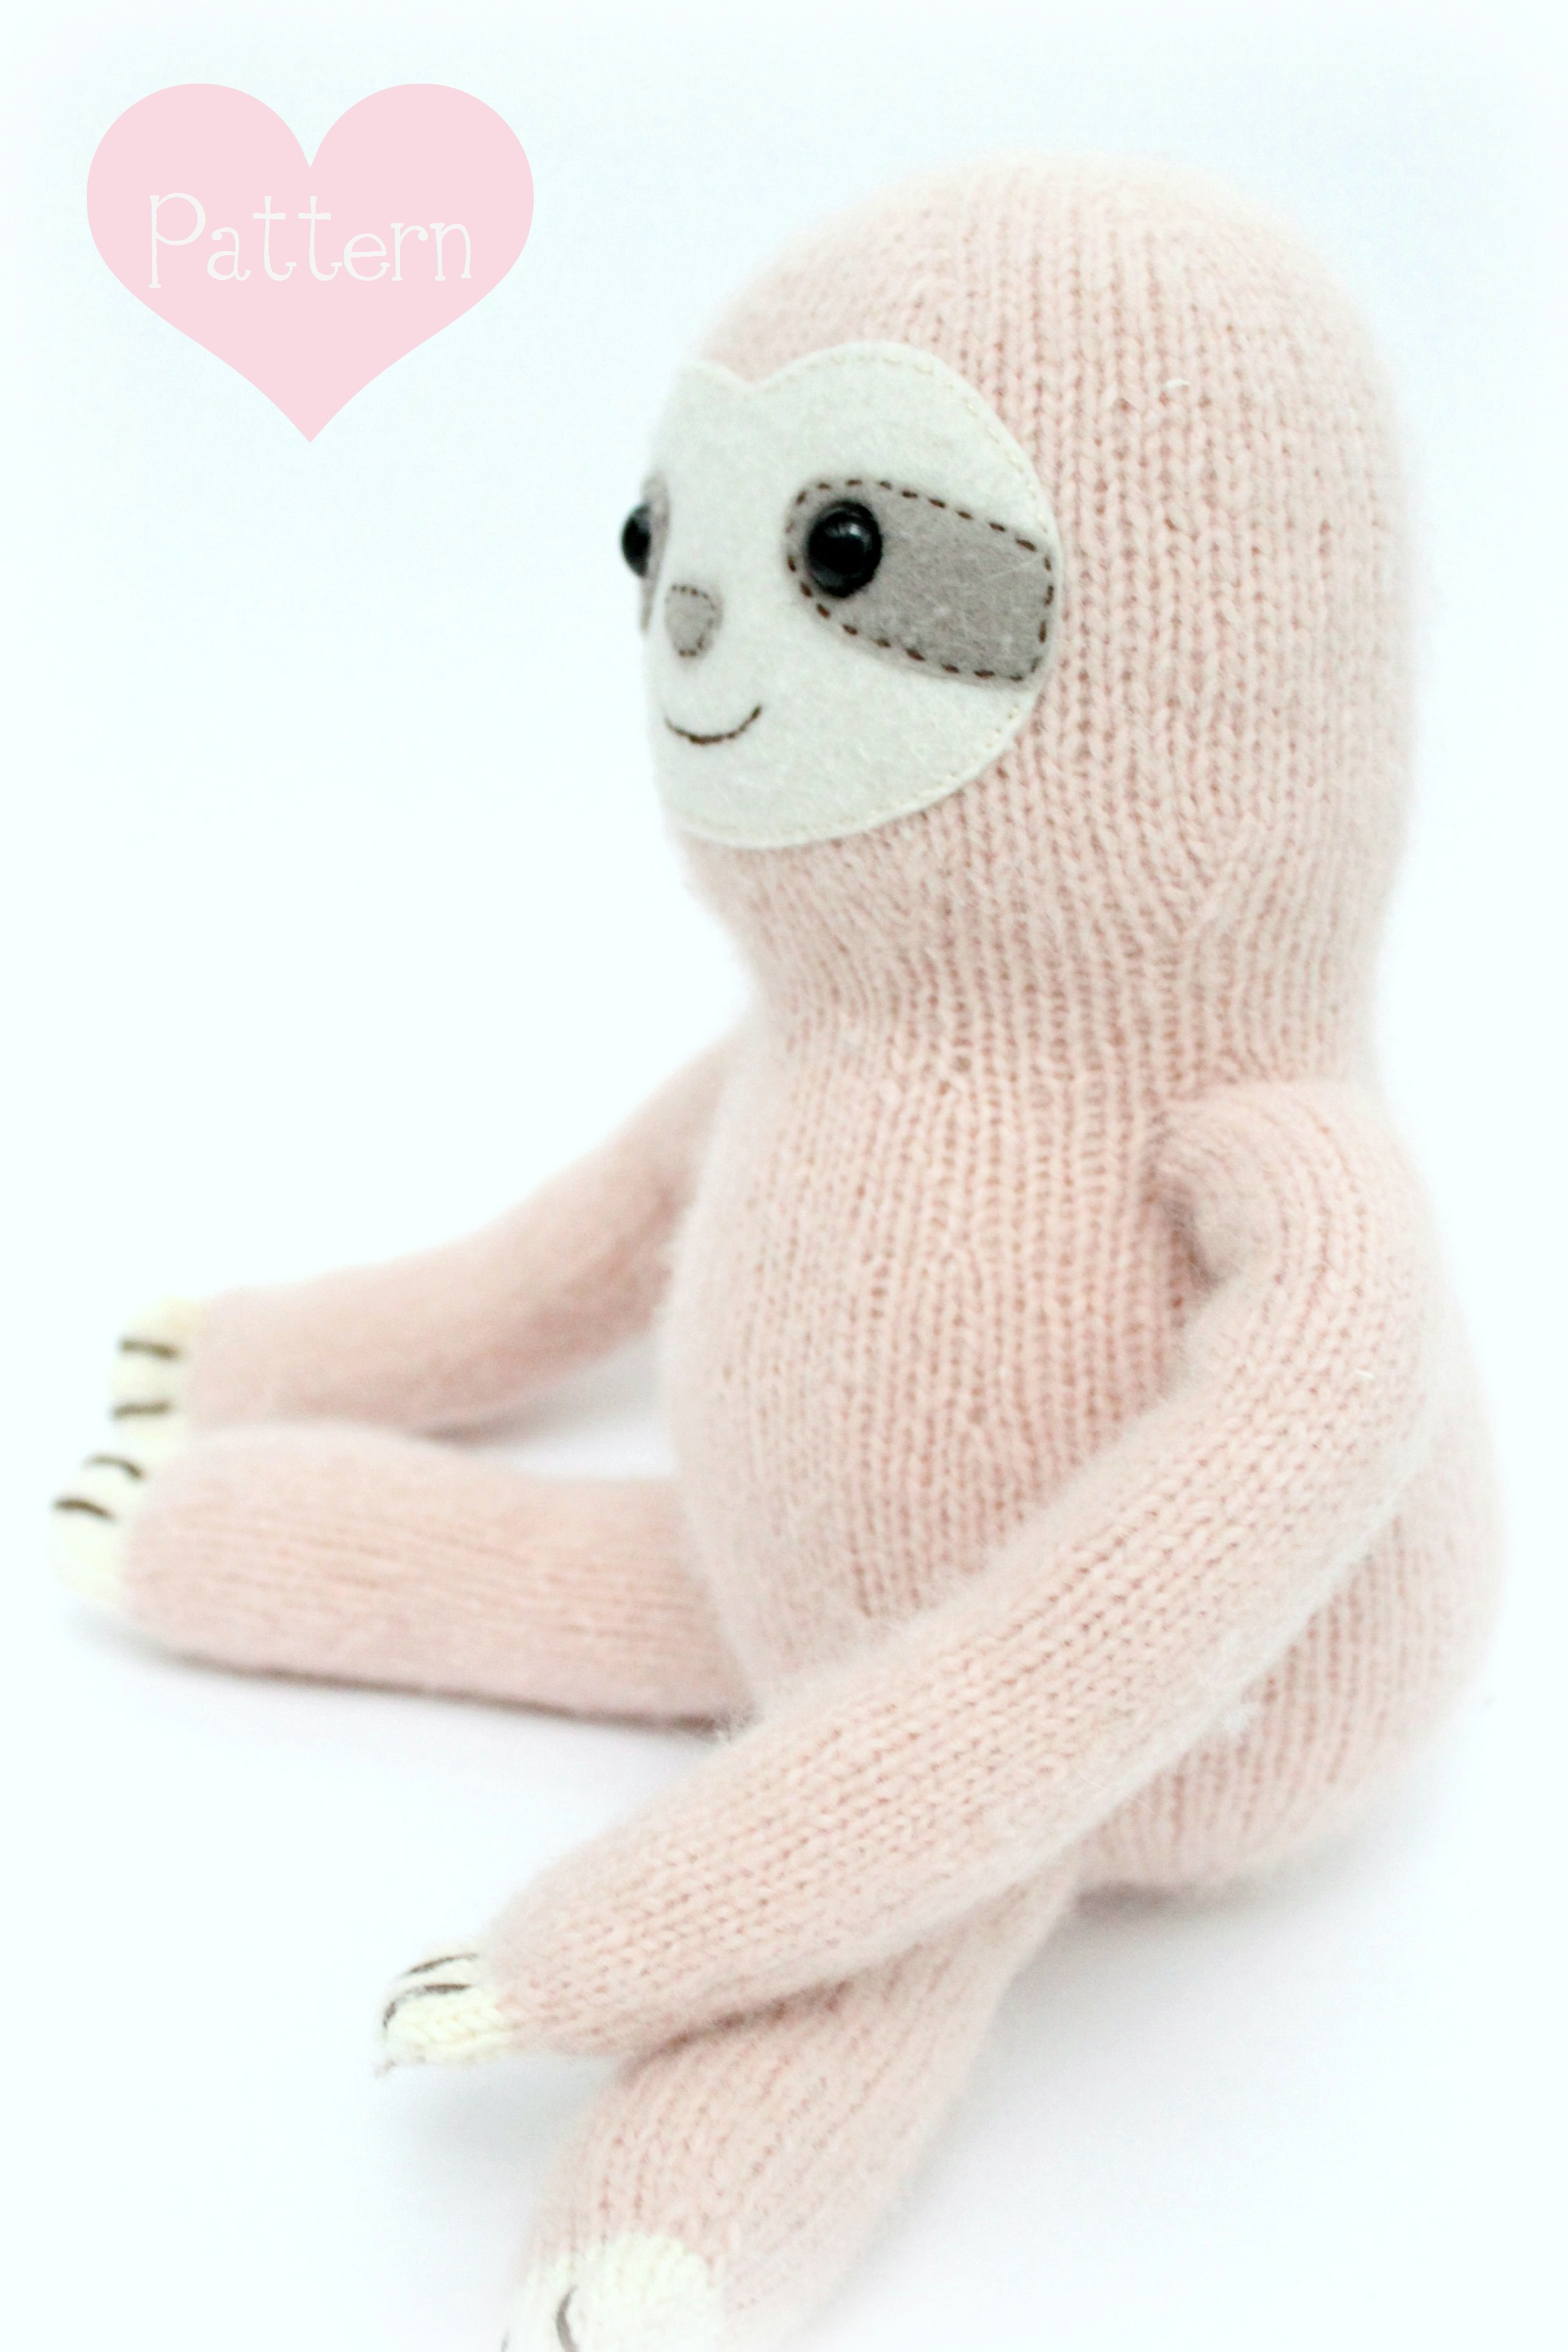 Knitting Patterns For Cat Toys Free Knitting Patterns Hello Dolly Knitting